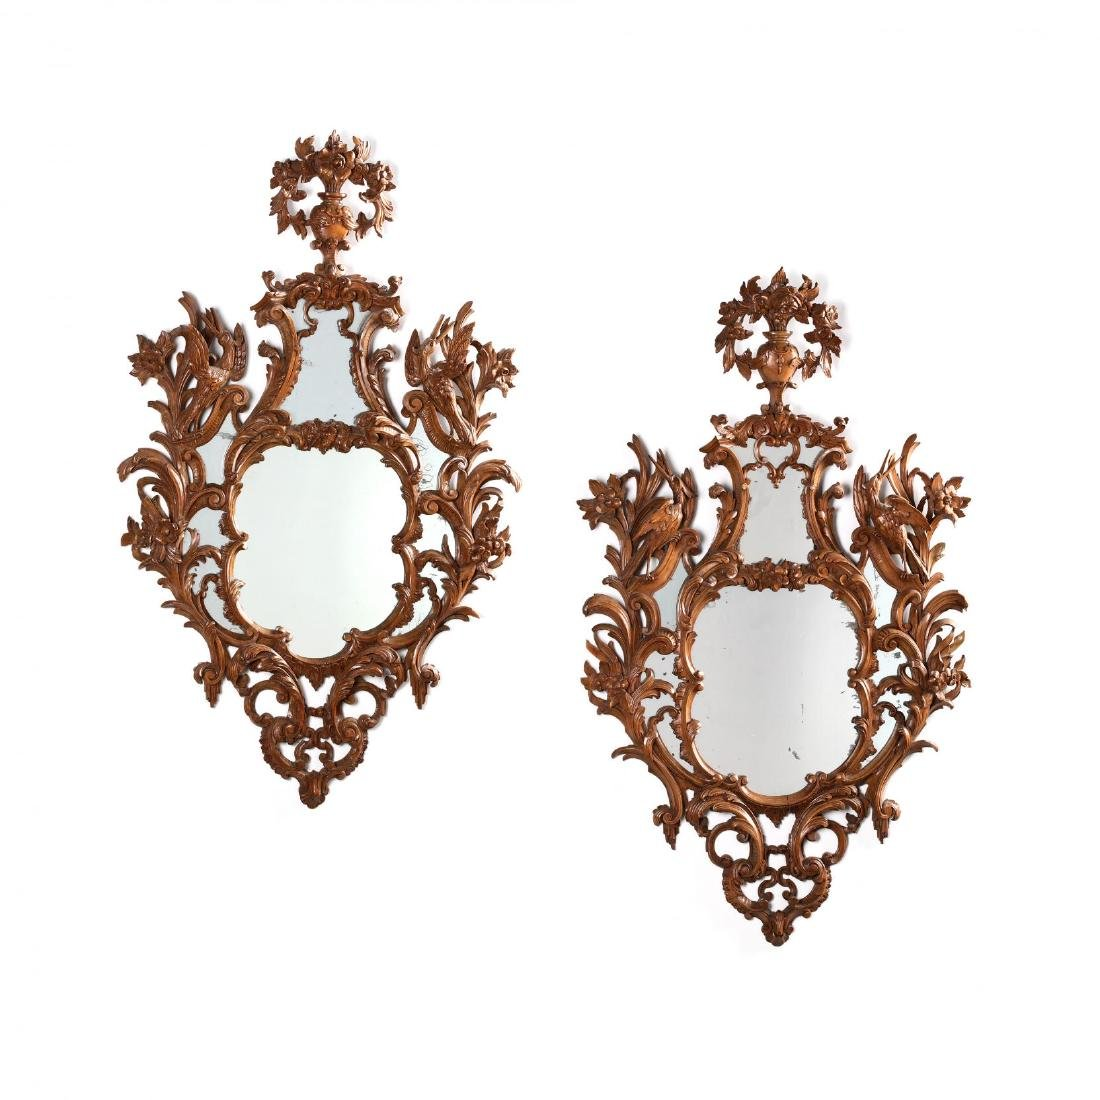 Pair of Italian Rococo Style Carved Wood Mirrors